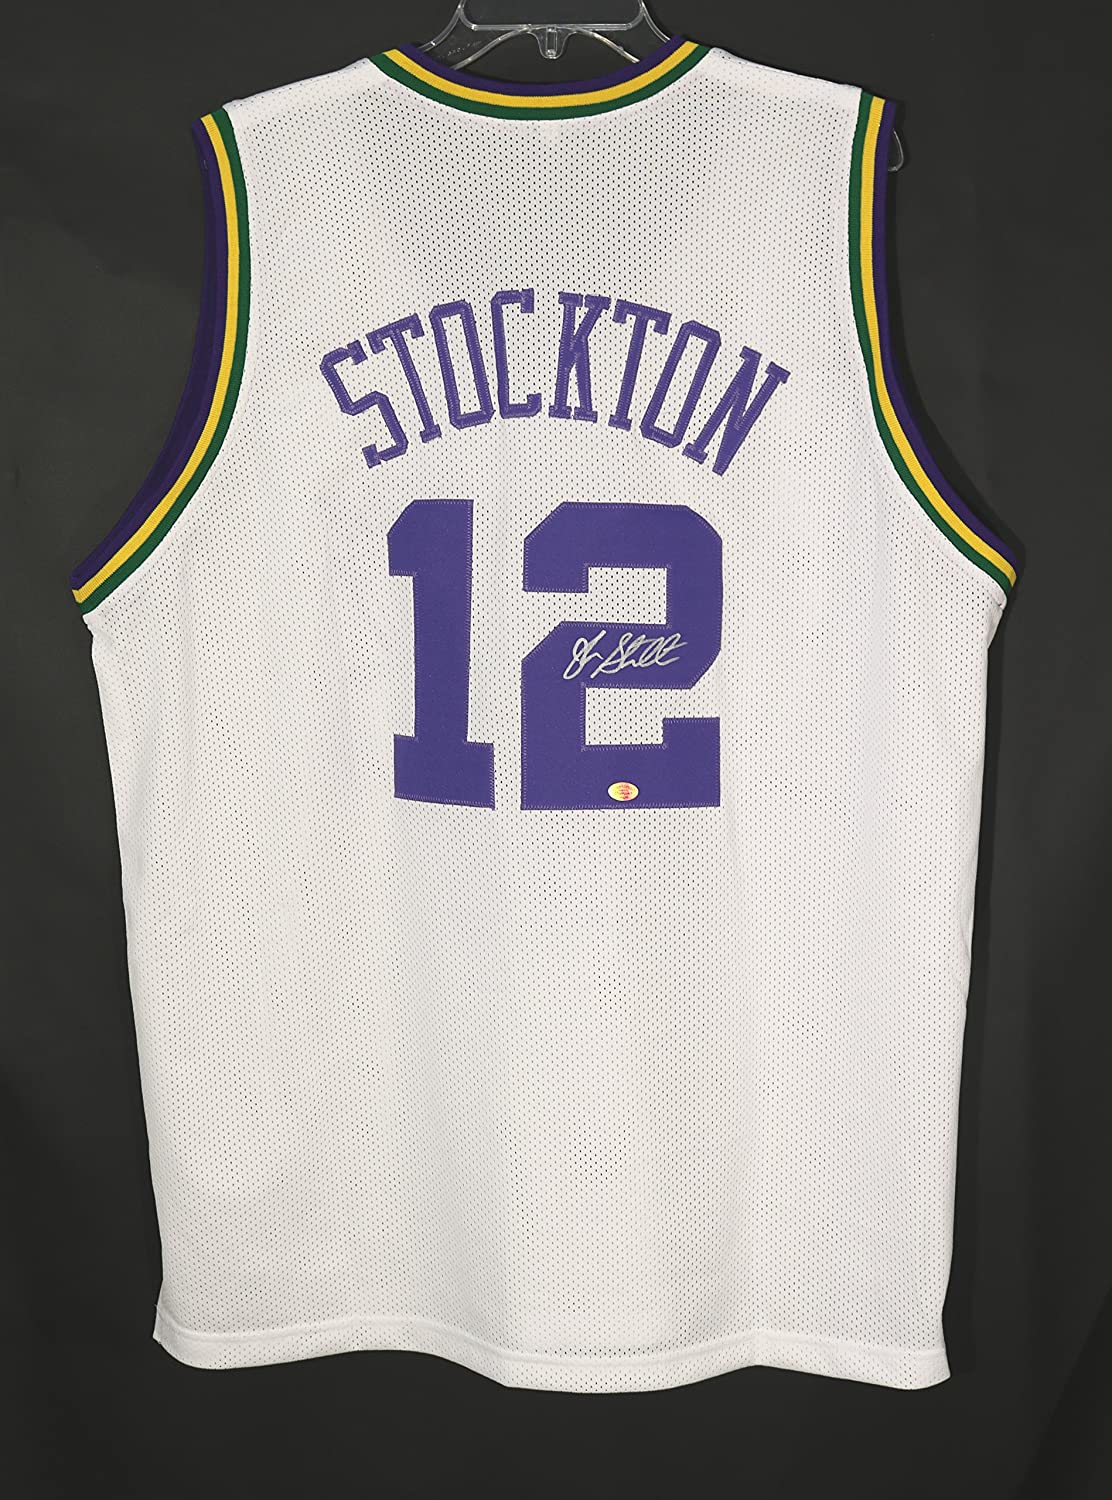 ... John Stockton Utah Jazz Signed Autographed White 12 Custom Jersey at  Amazons Sports Collectibles Store ... acf408479